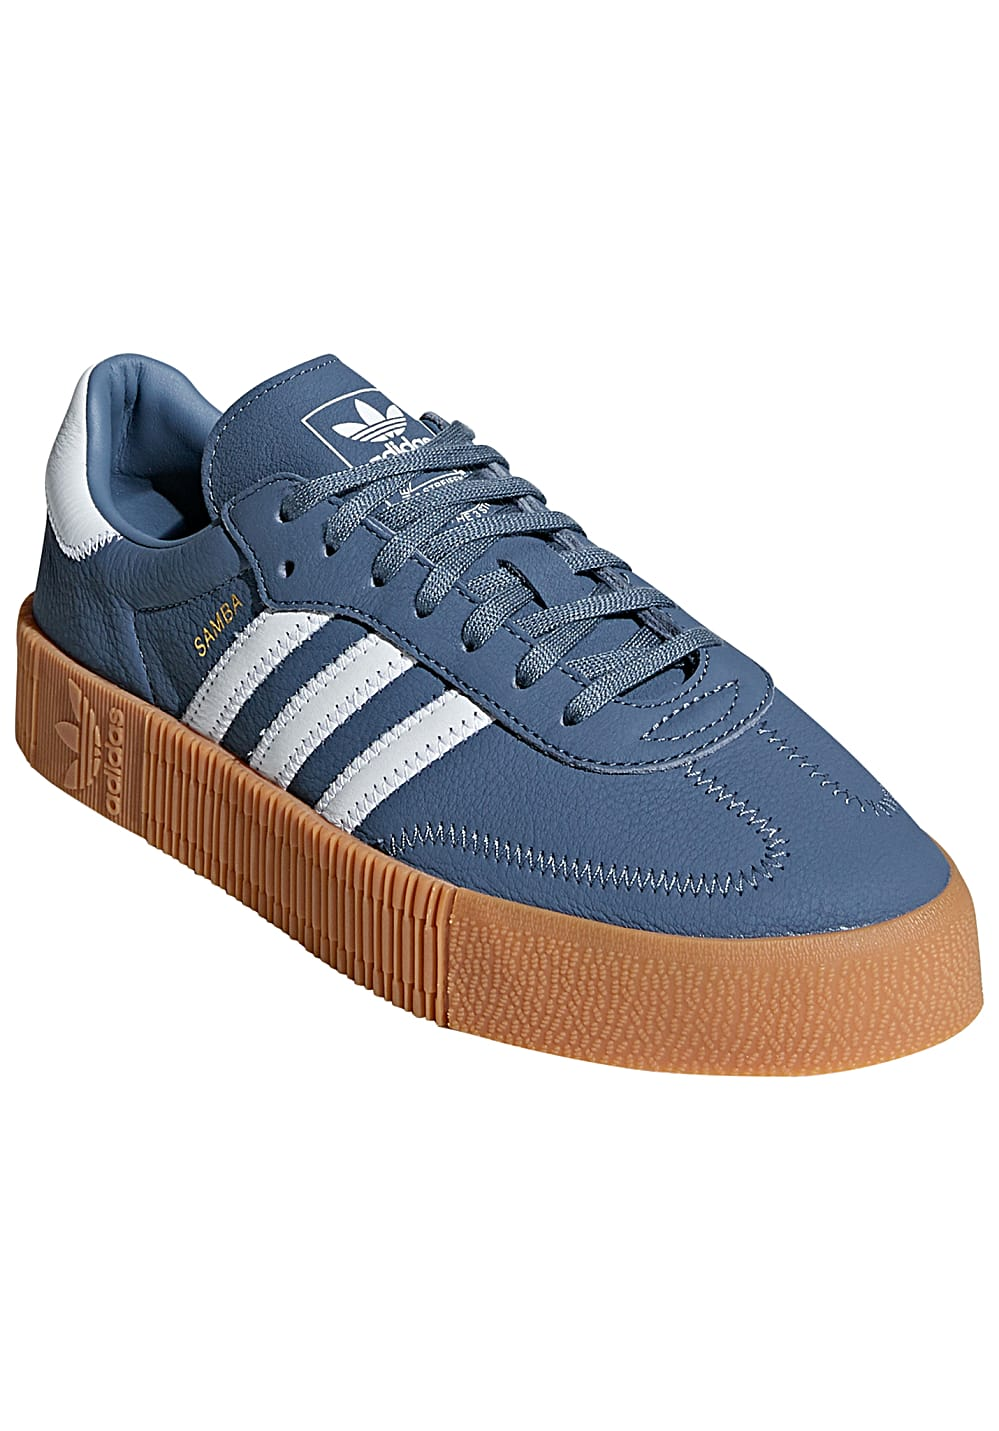 8ae4929bd41f3 ADIDAS ORIGINALS Sambarose - Sneakers for Women - Blue